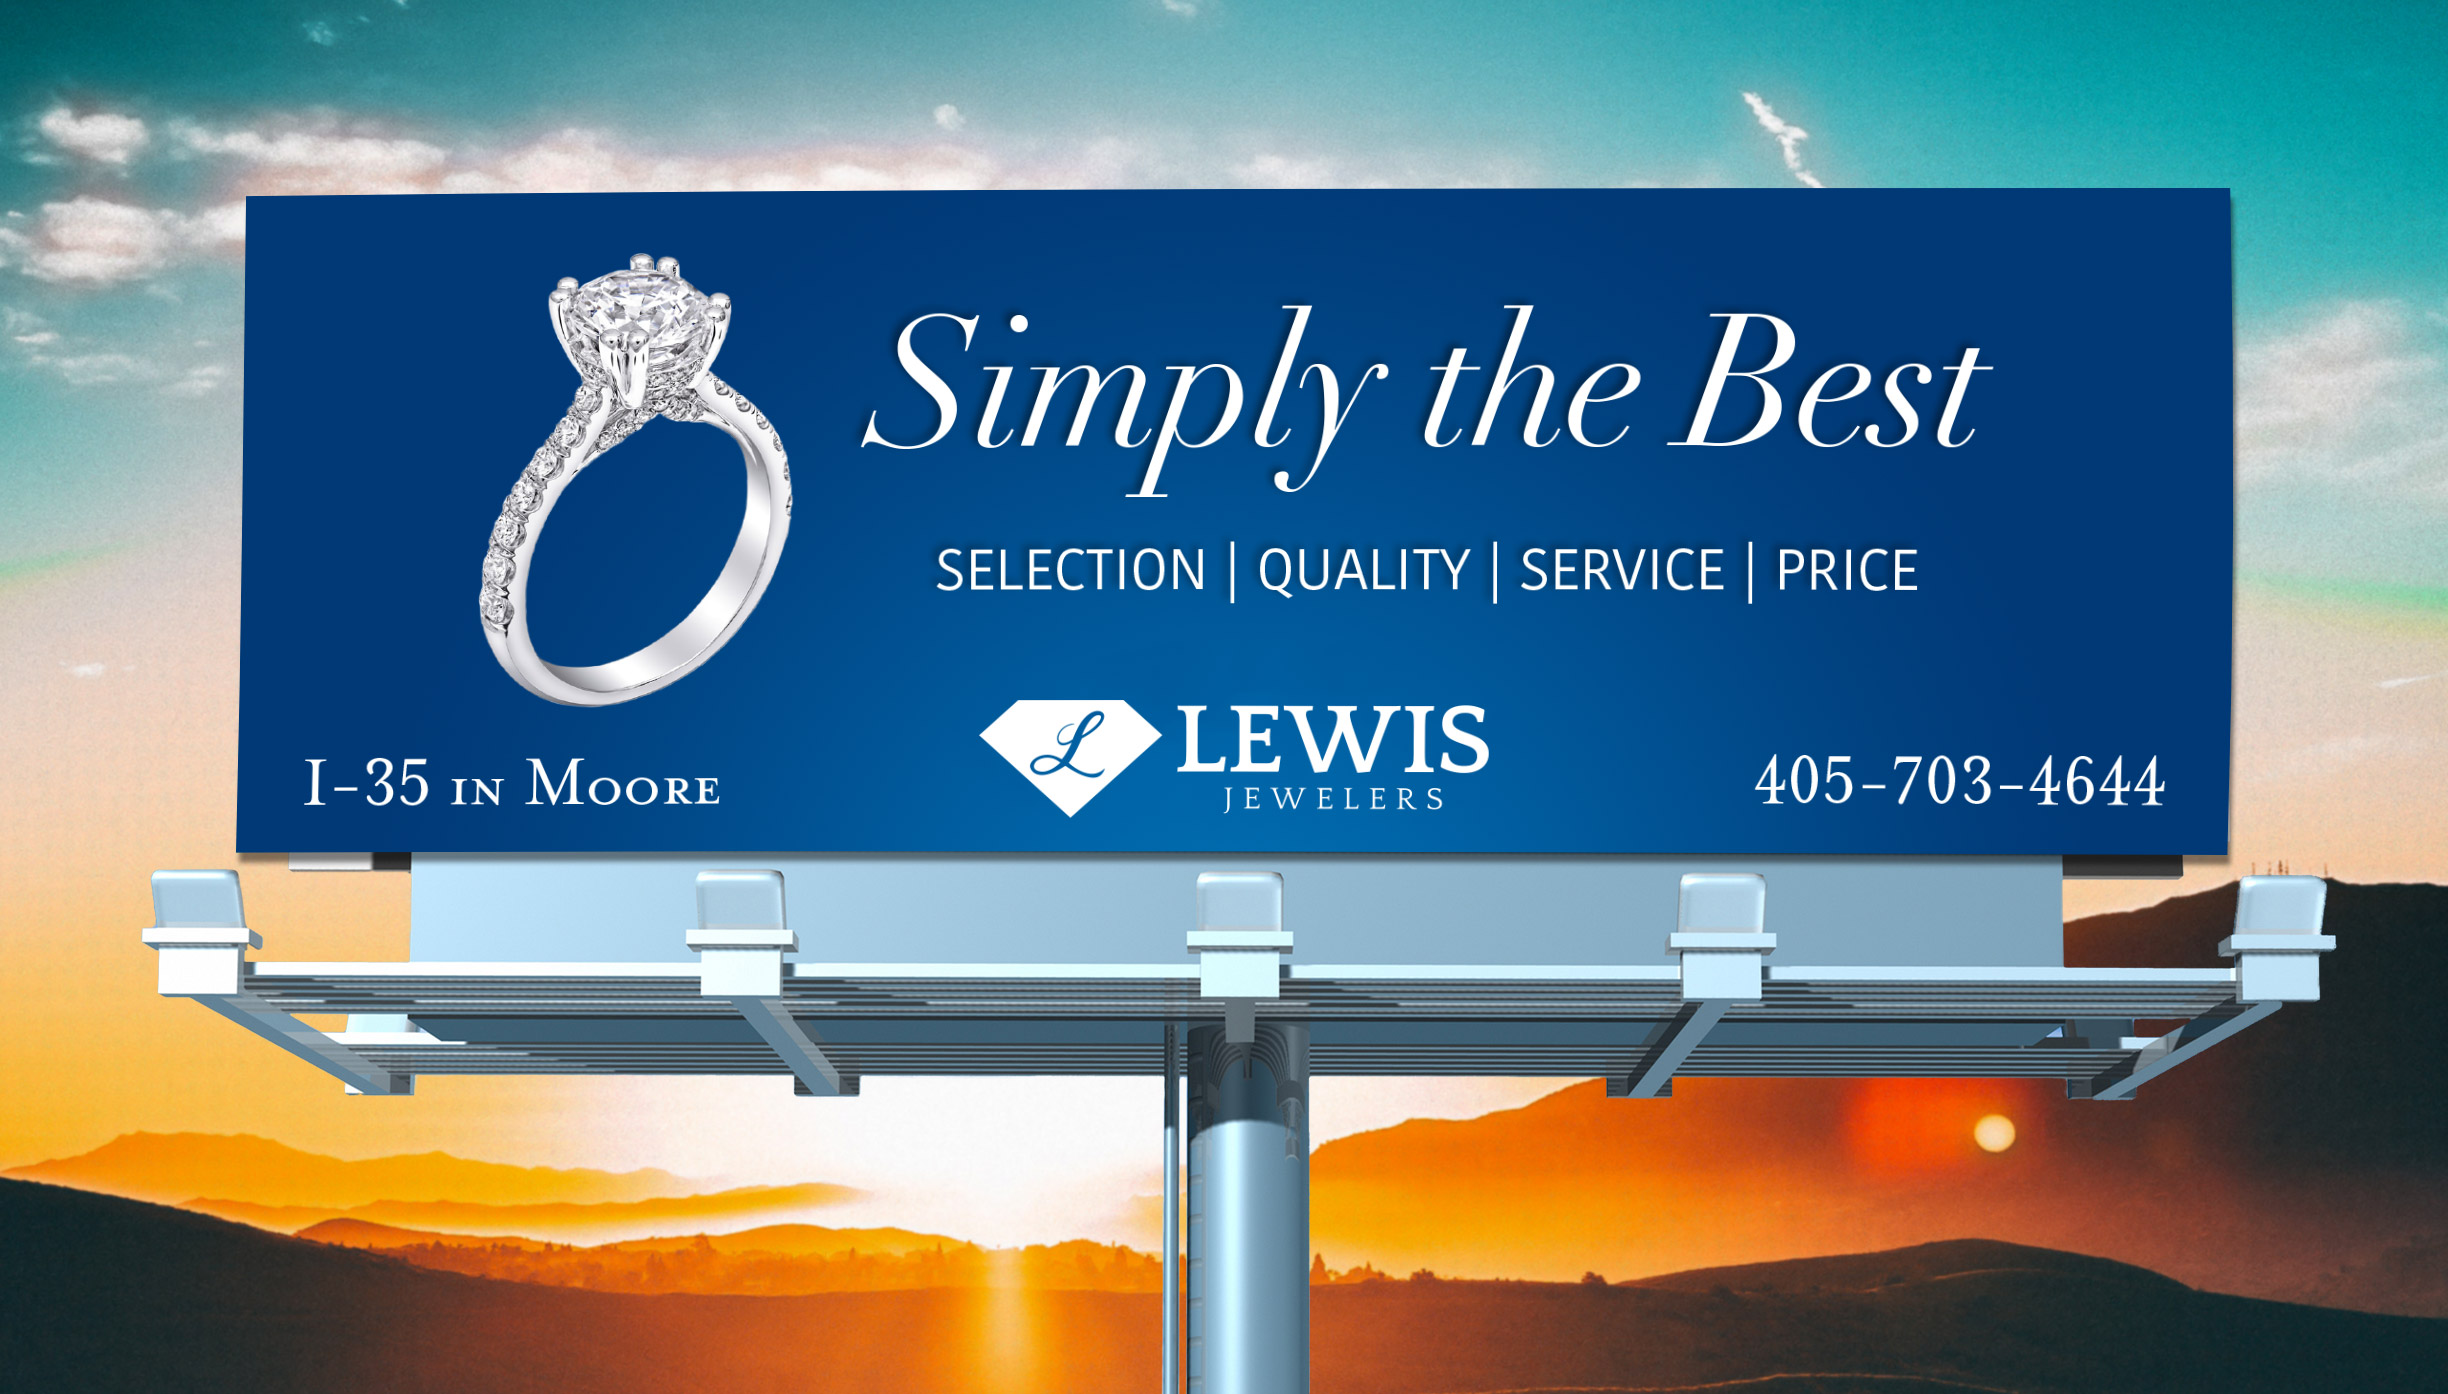 Lewis-Jewelers-Outdoor-Boards-SimplyTheBest.jpg